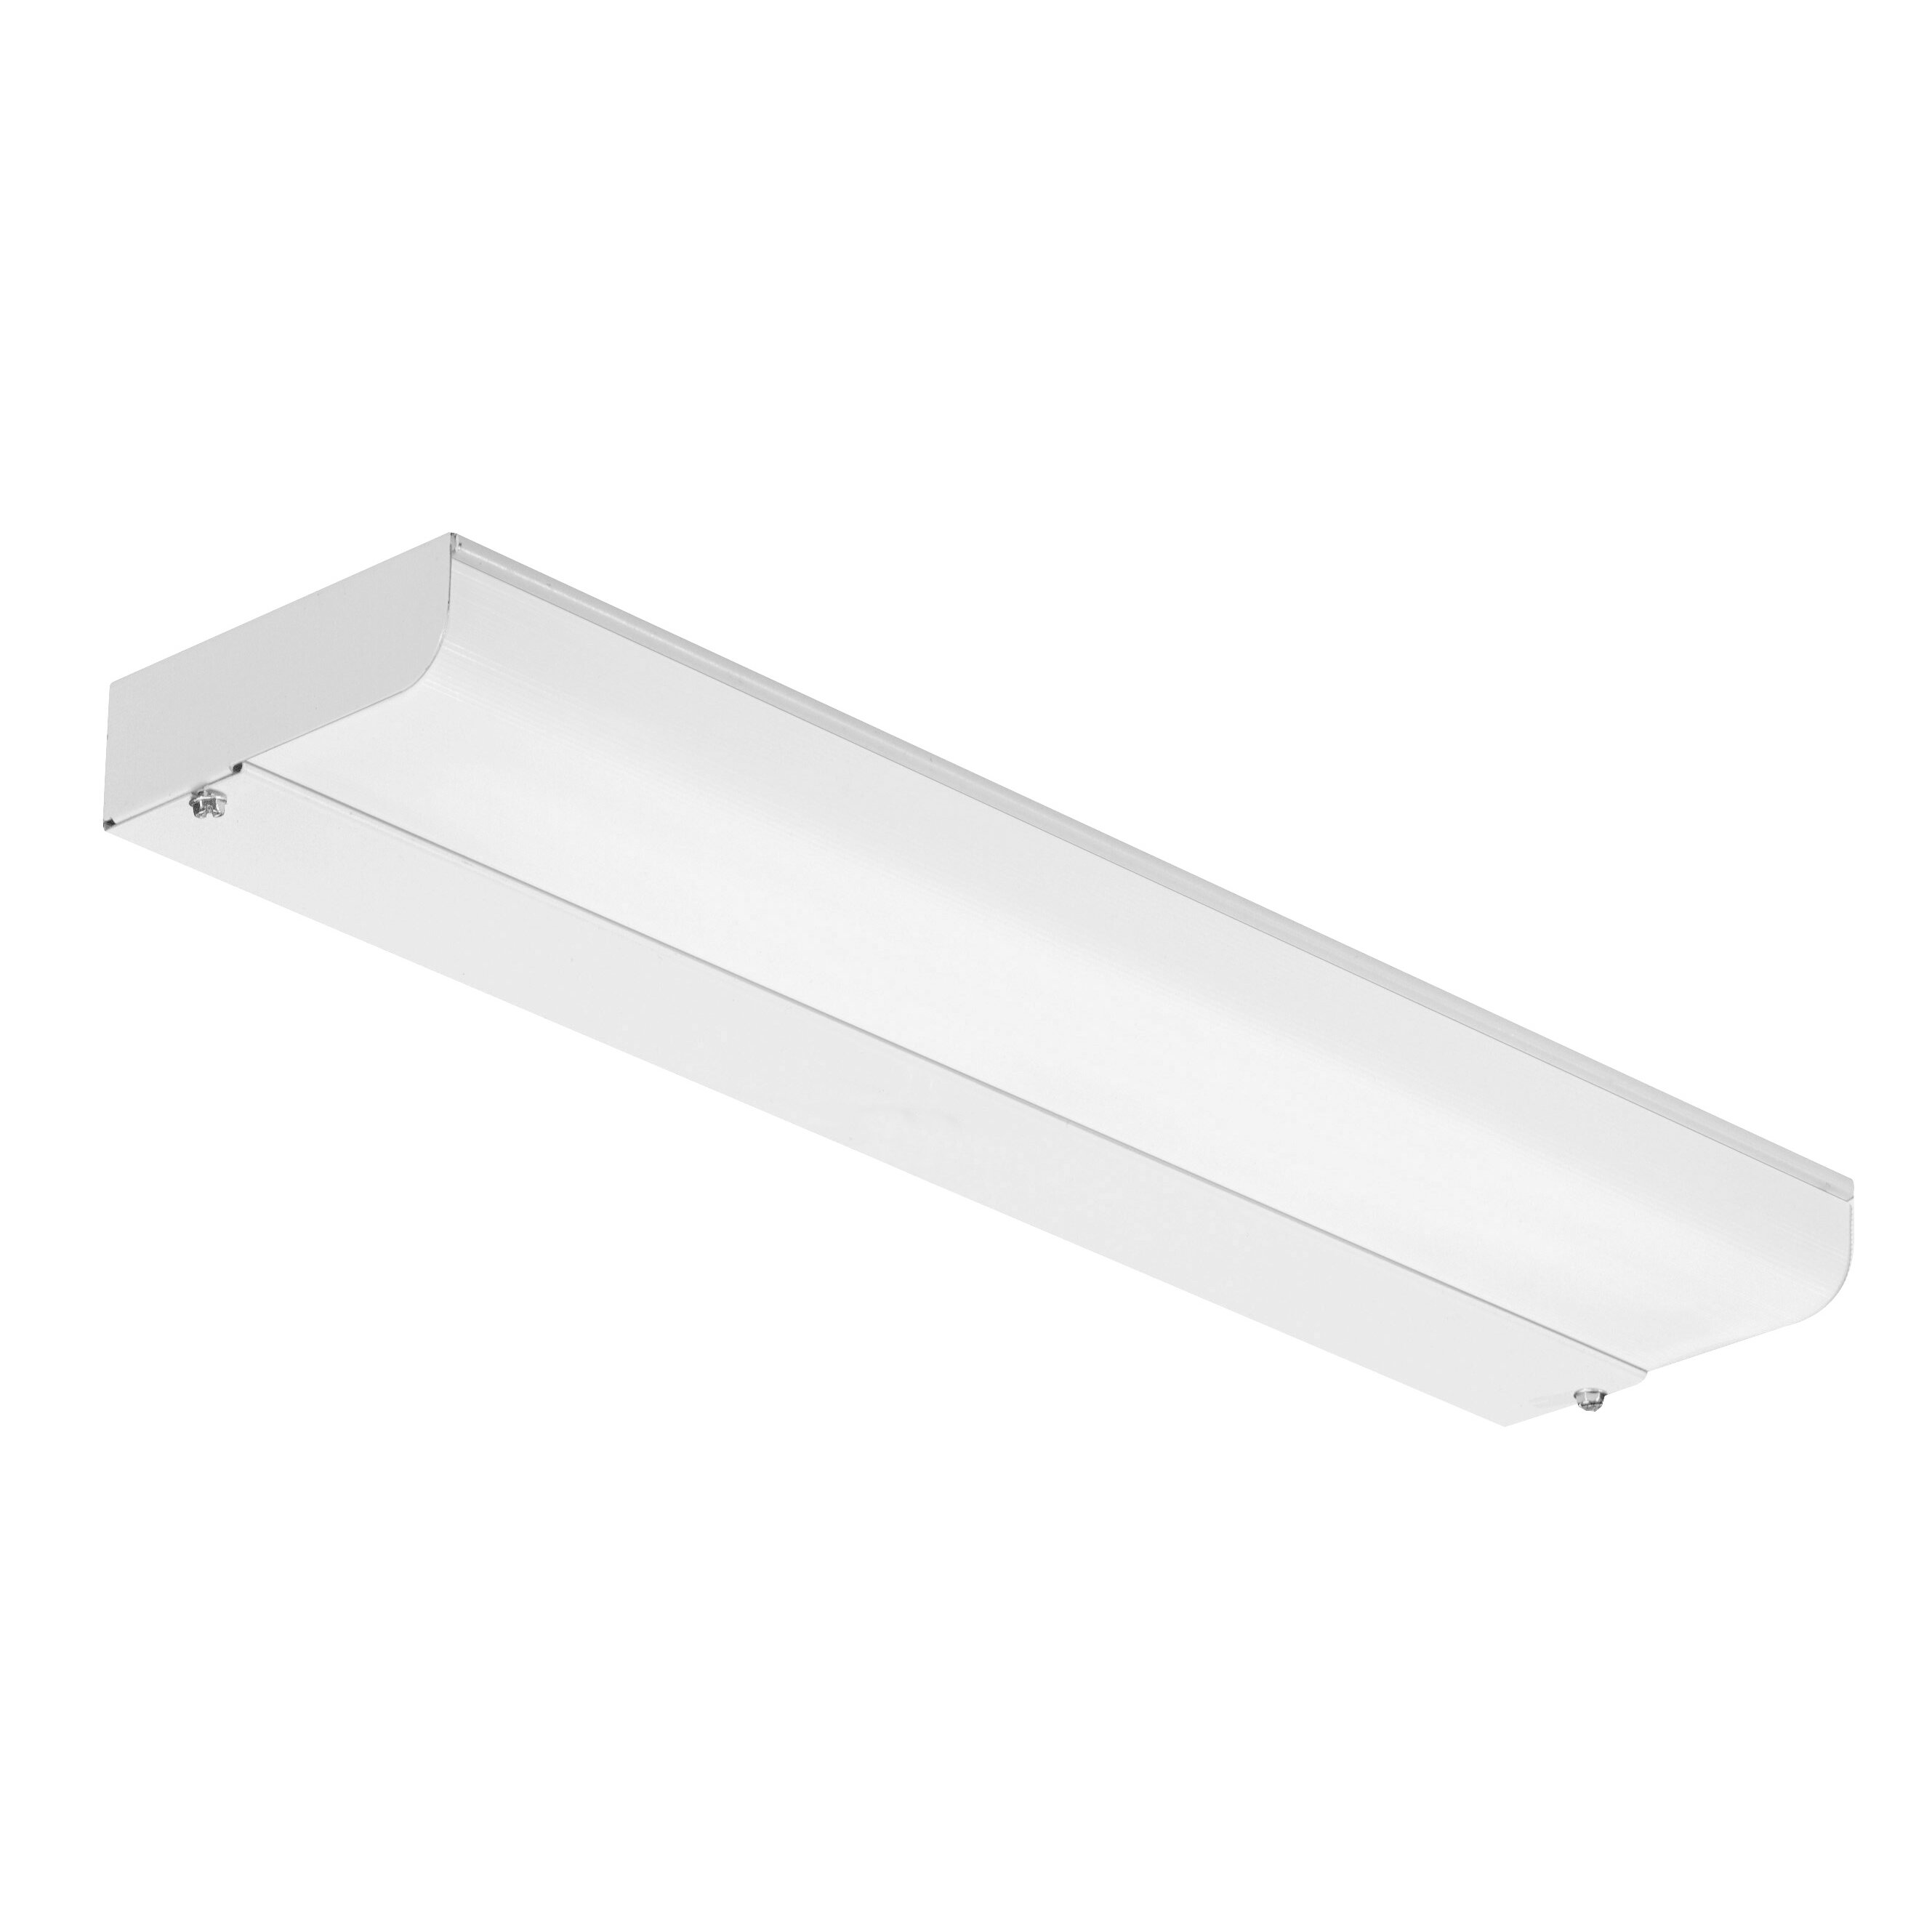 afx fluorescent under cabinet bar light reviews wayfair. Black Bedroom Furniture Sets. Home Design Ideas